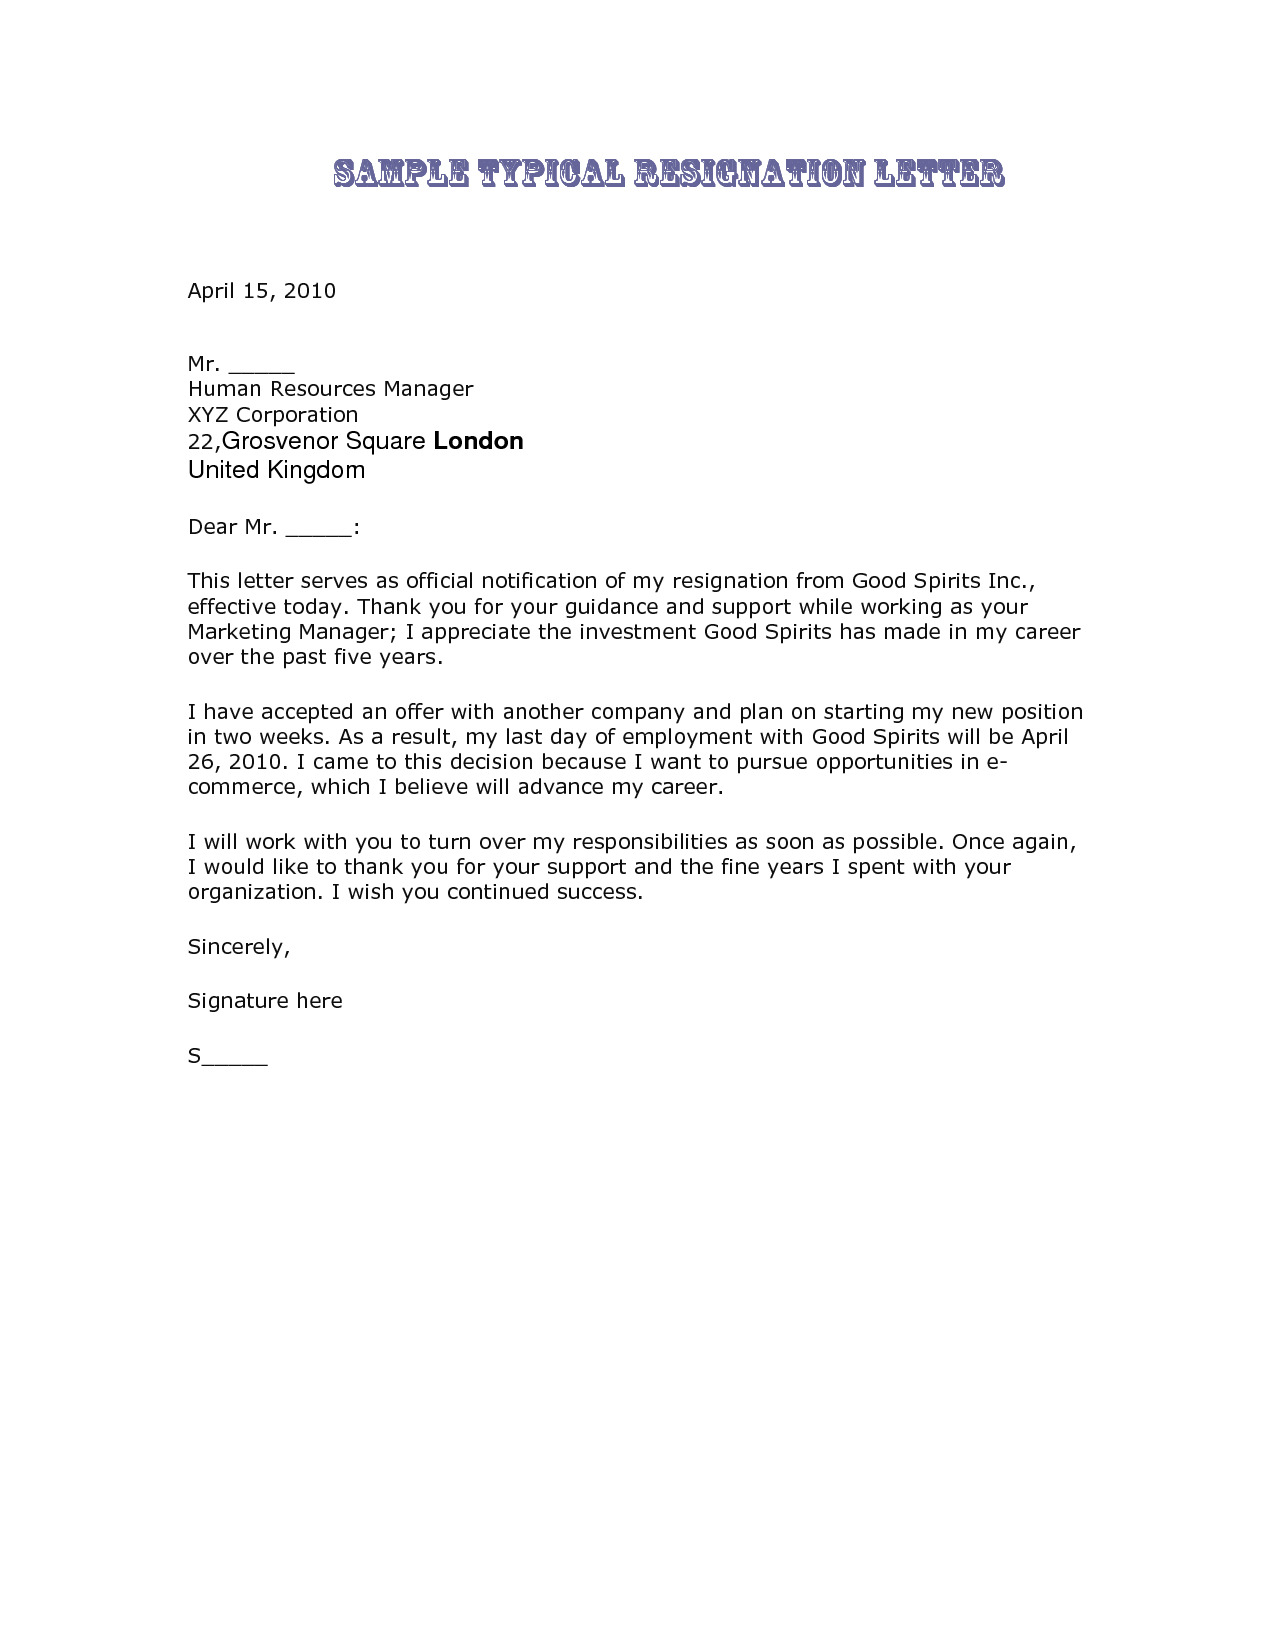 Best Letter Of Resignation The Legal Profession Depends On